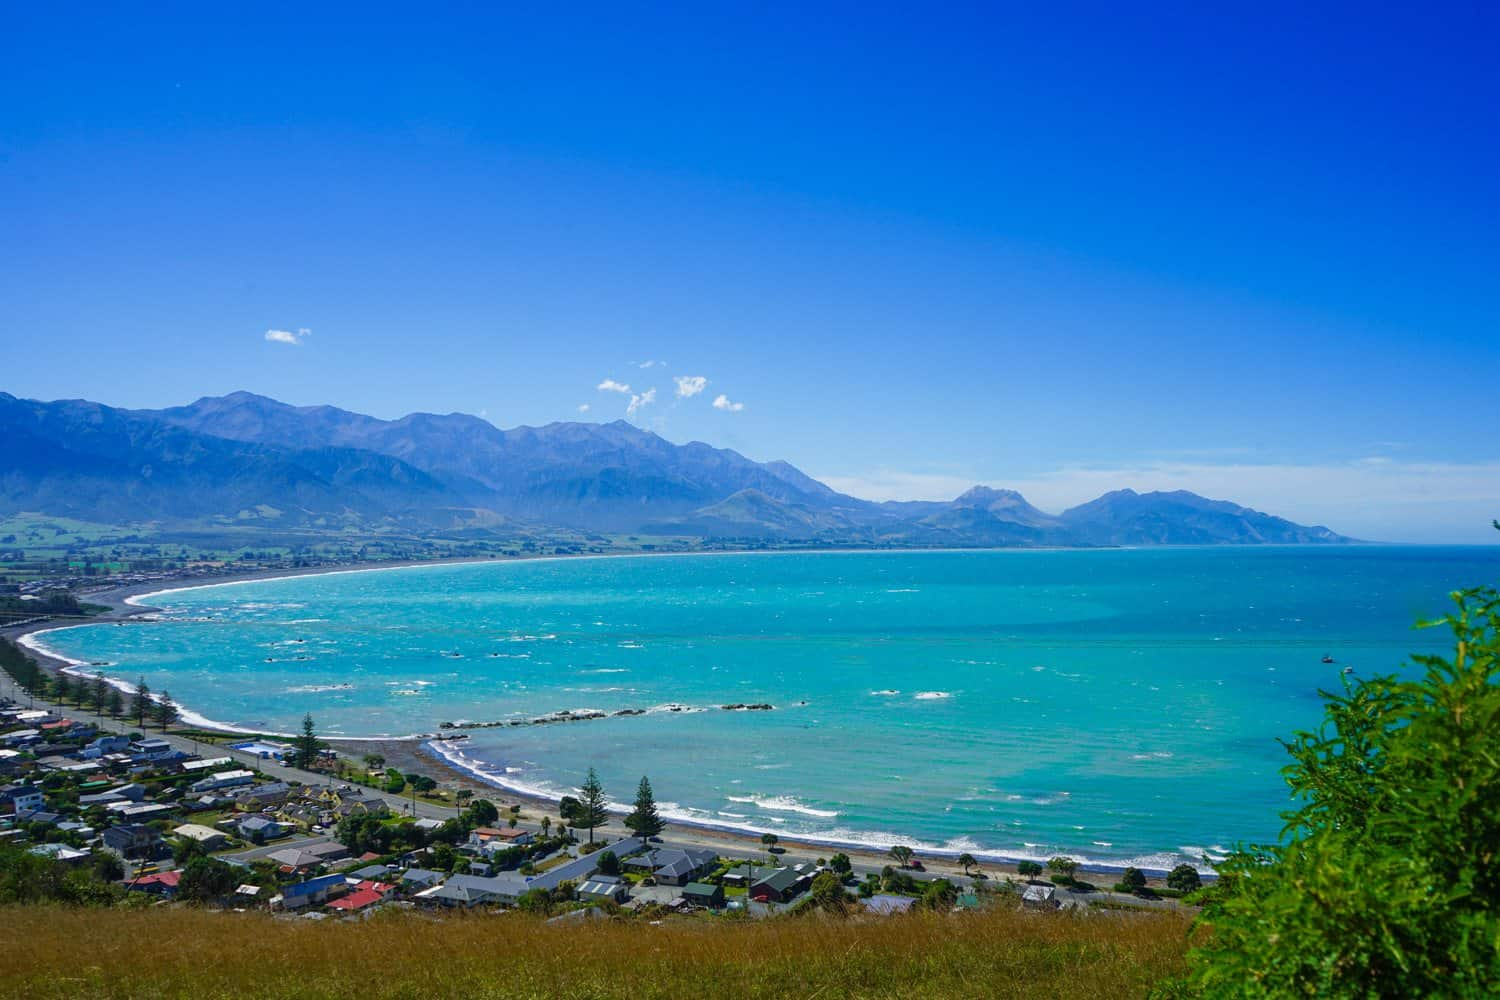 Kaikoura from above